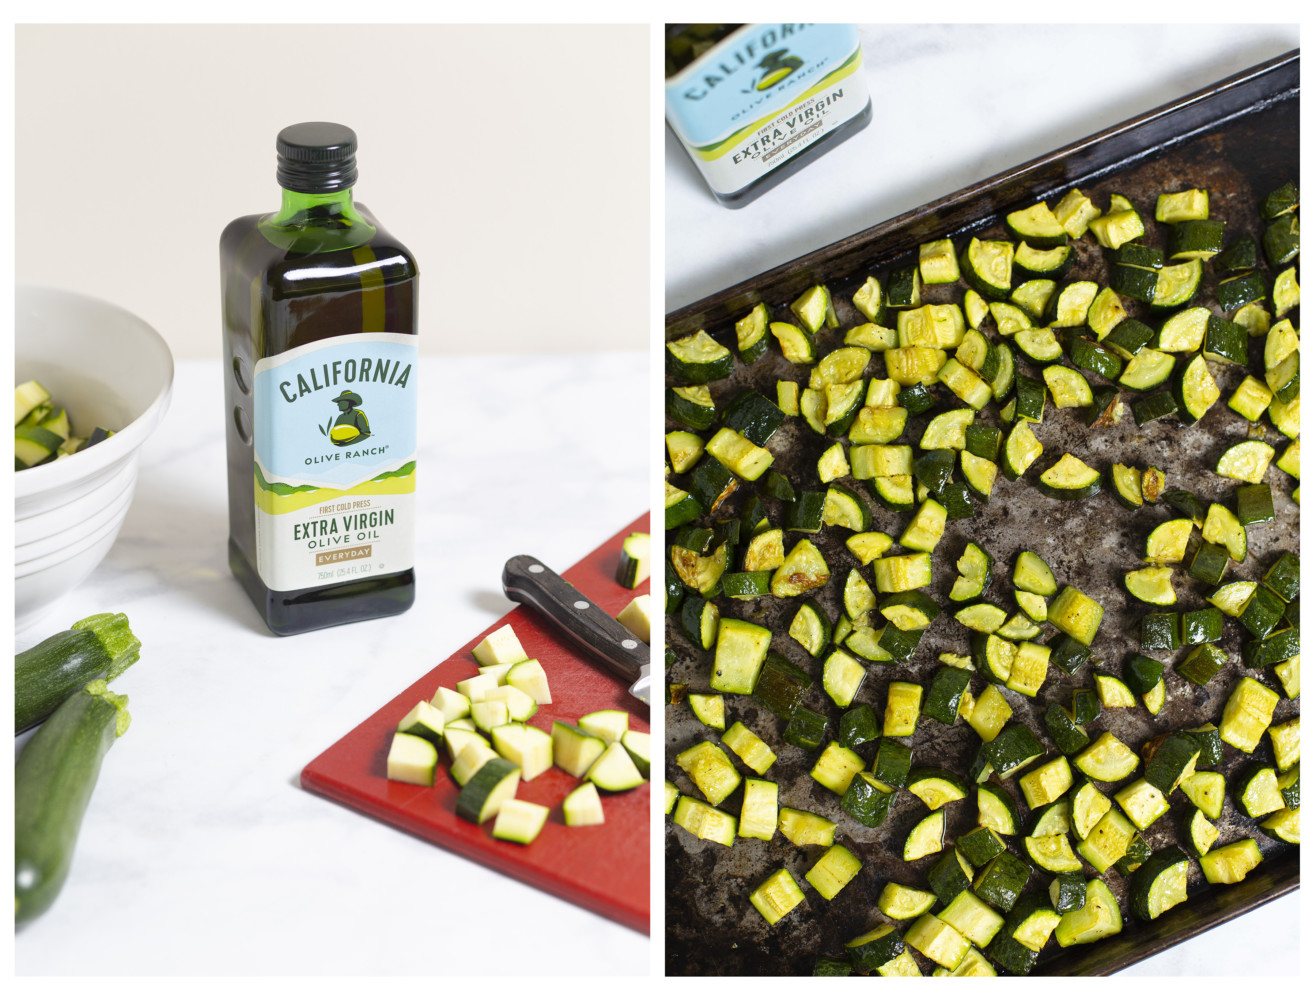 California olive ranch extra virgin olive oil next to a pan of freshly roasted zucchini.